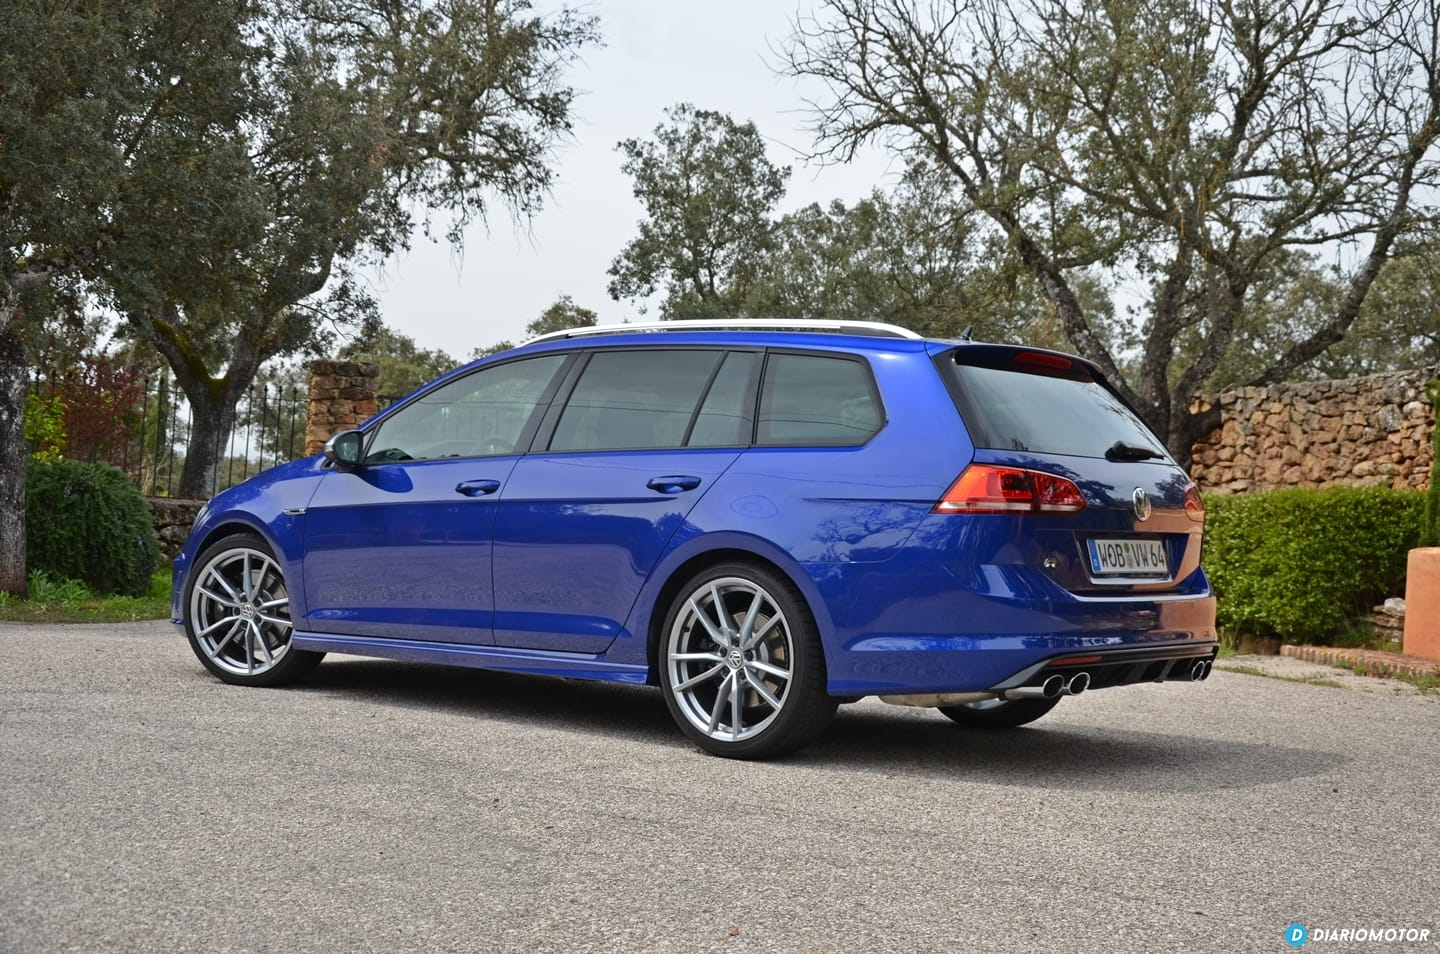 volkswagen golf variant r a prueba un familiar para correr en circuito diariomotor. Black Bedroom Furniture Sets. Home Design Ideas